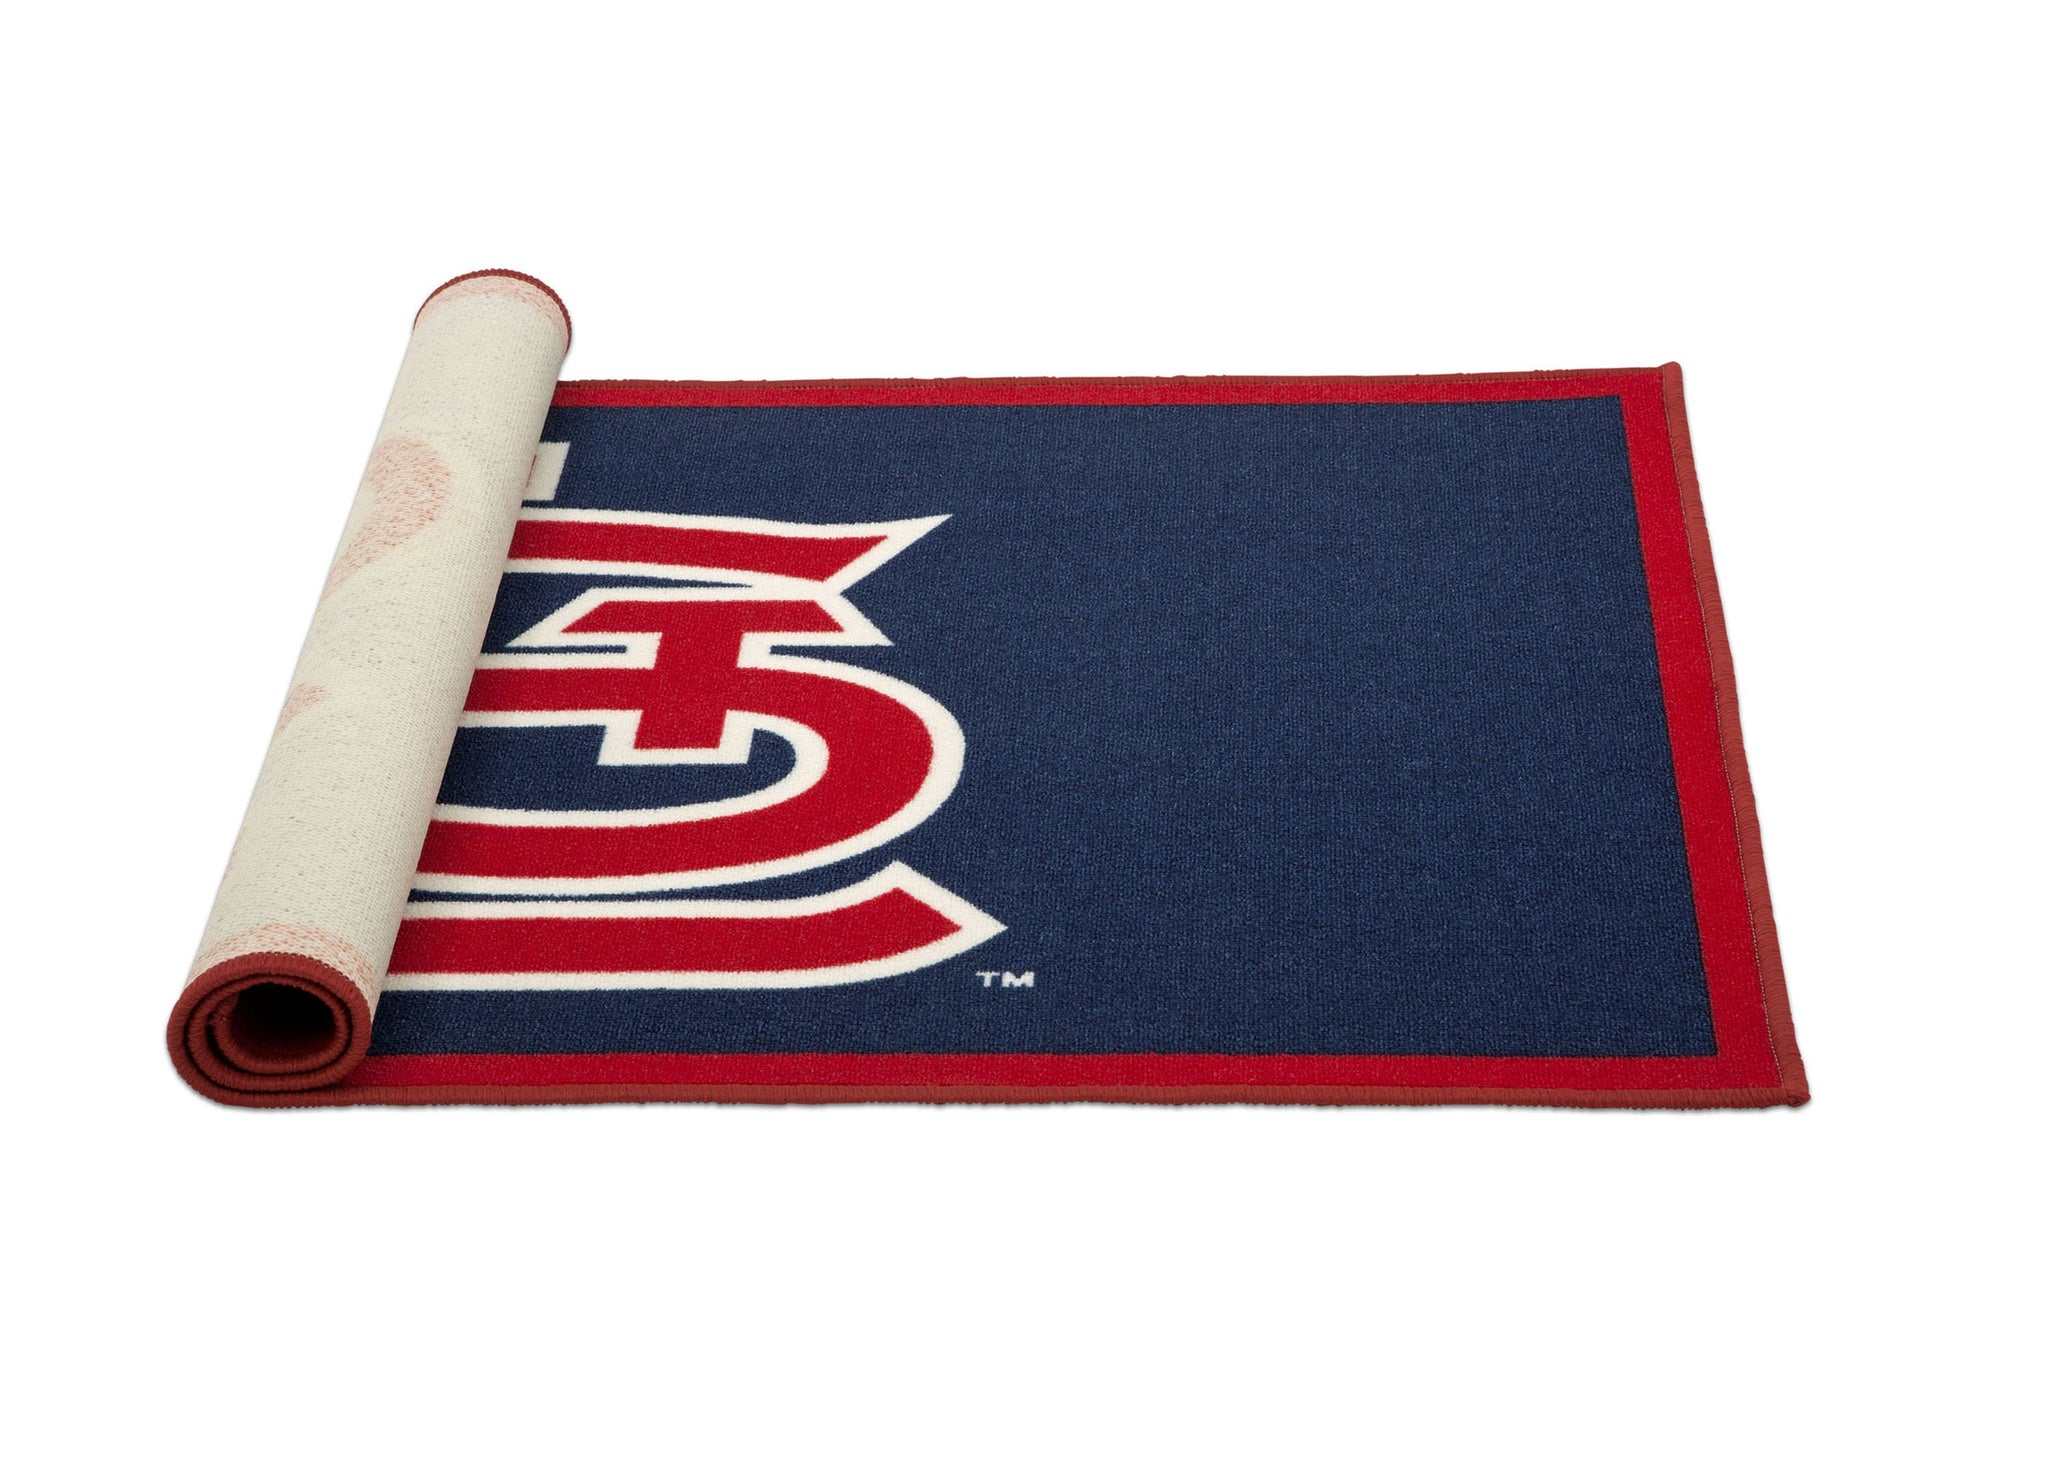 Delta Children St. Louis Cardinals (1234) Soft Area Rug with Non-Slip Backing (TR9812STL), Rolled, a3a